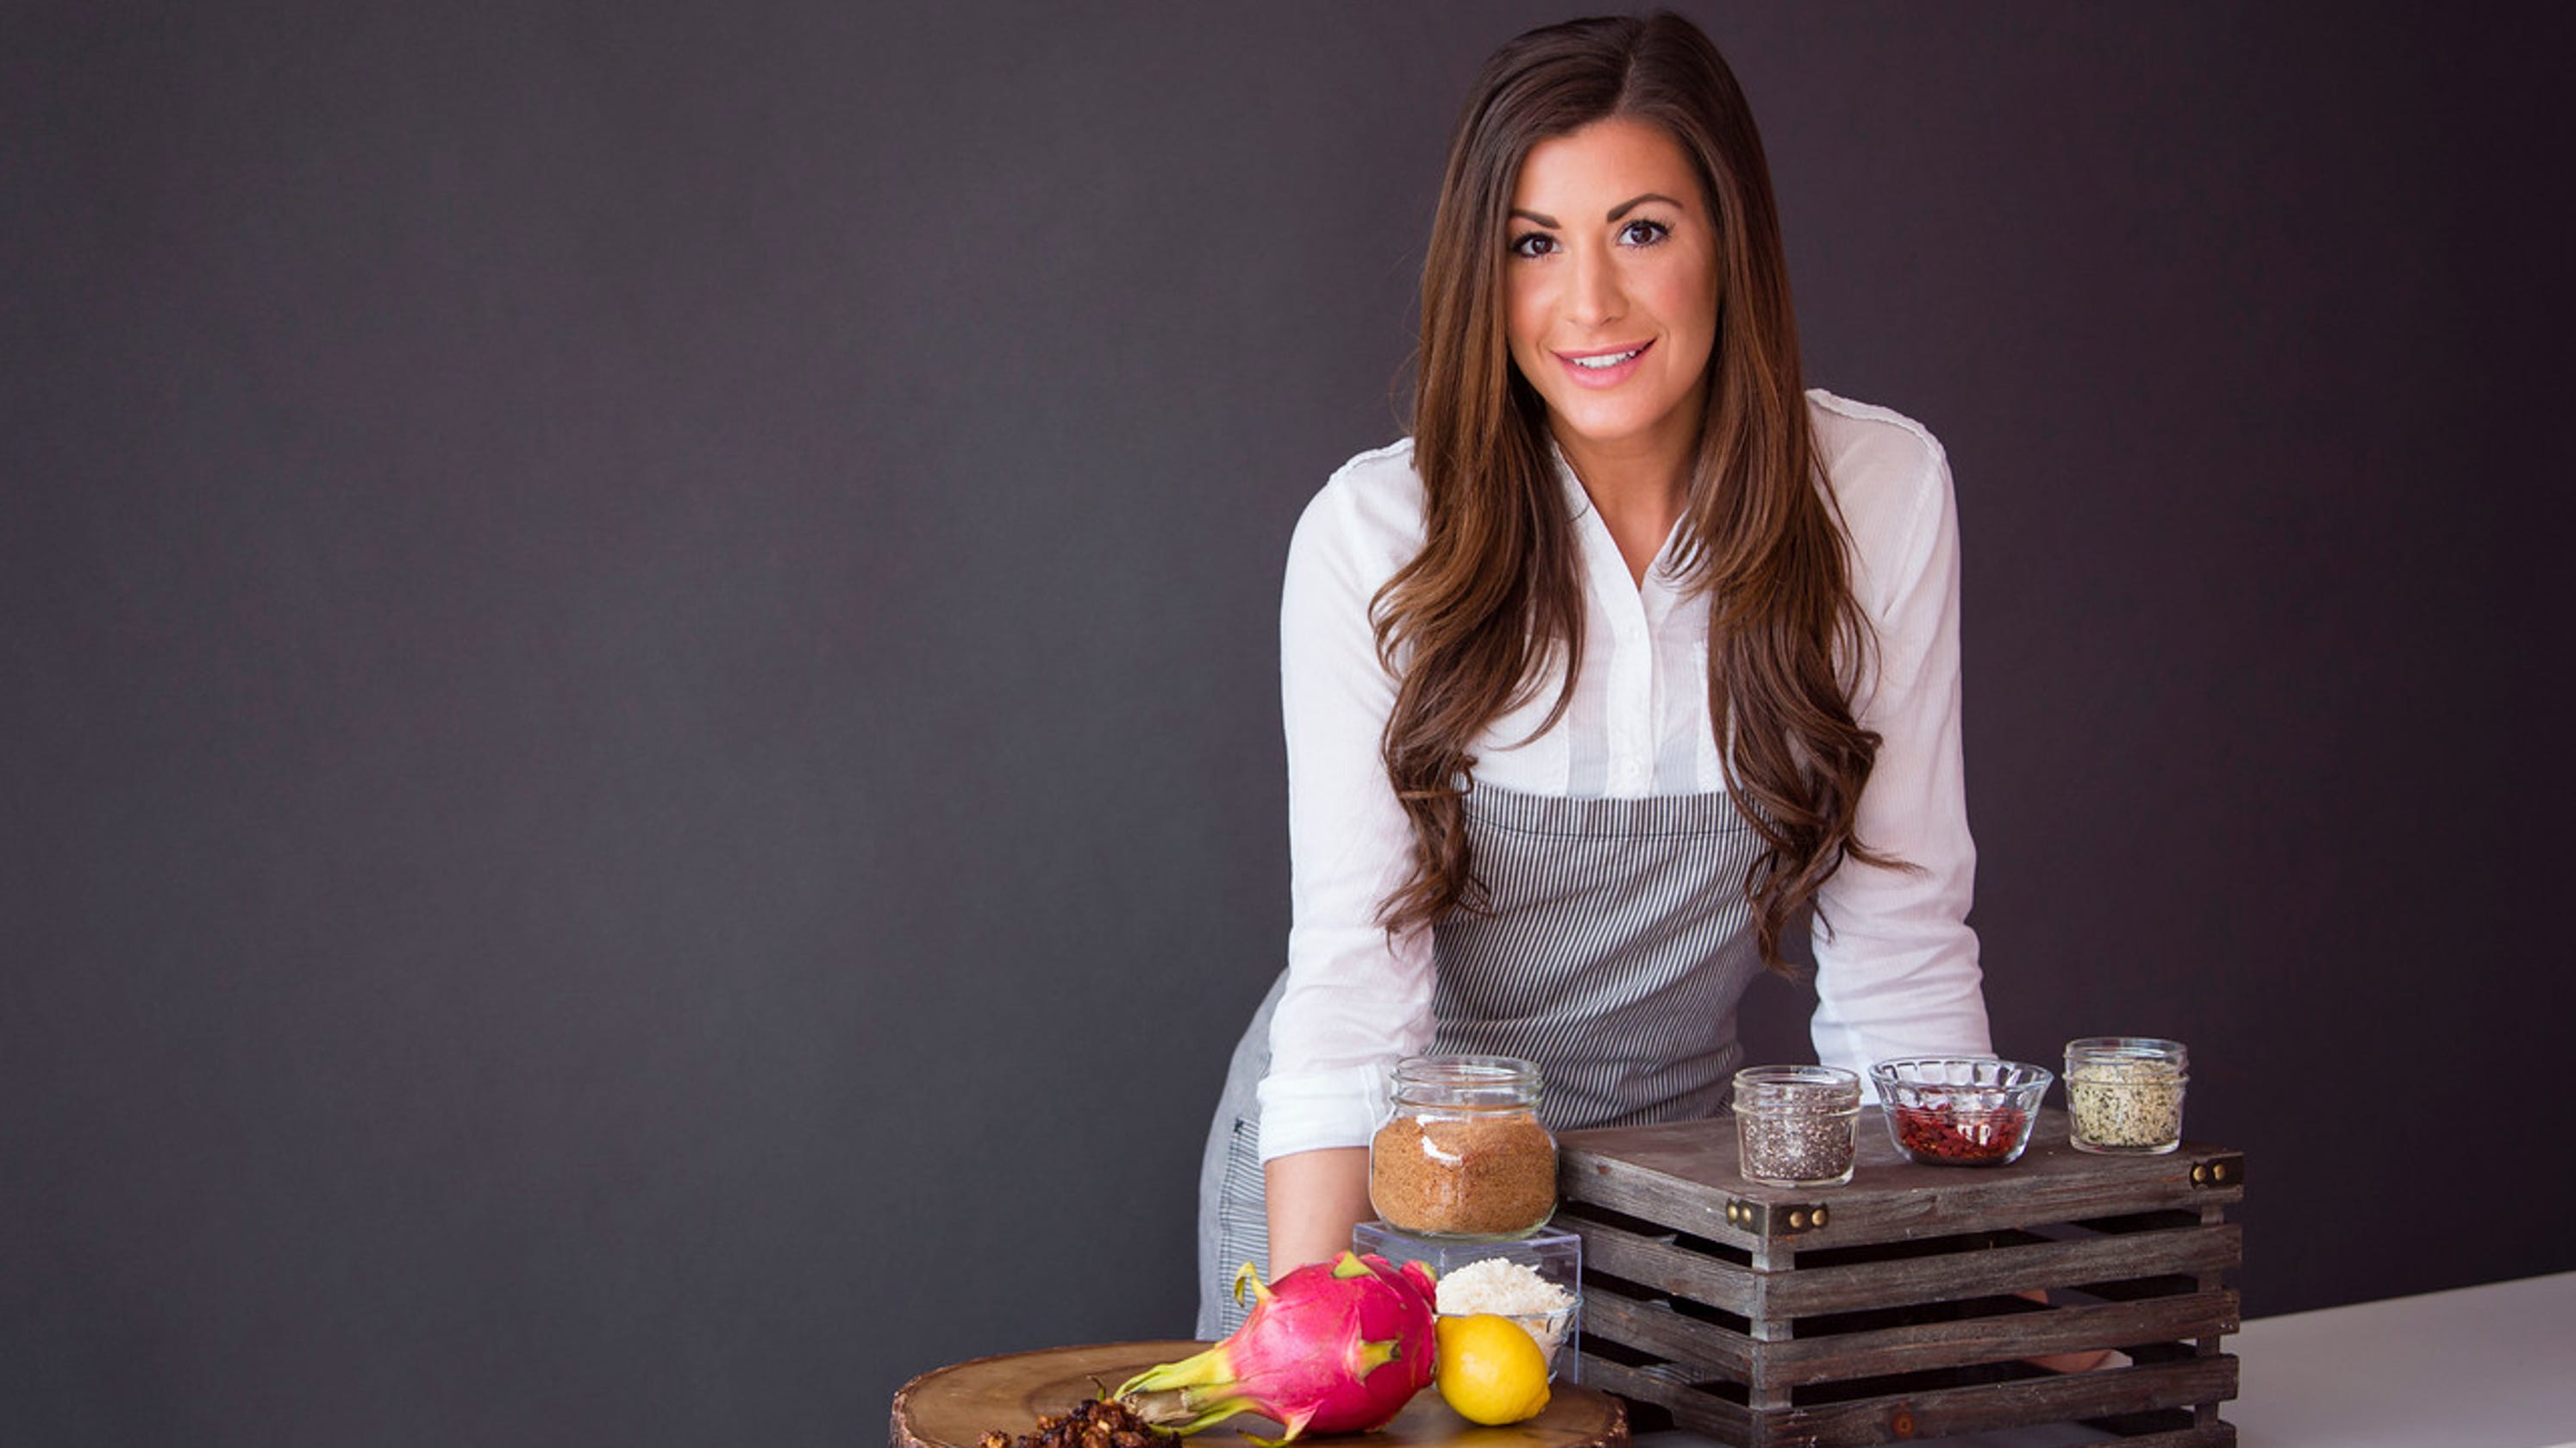 Mindful Snack Foods This 29 Year Old Wants To Build A